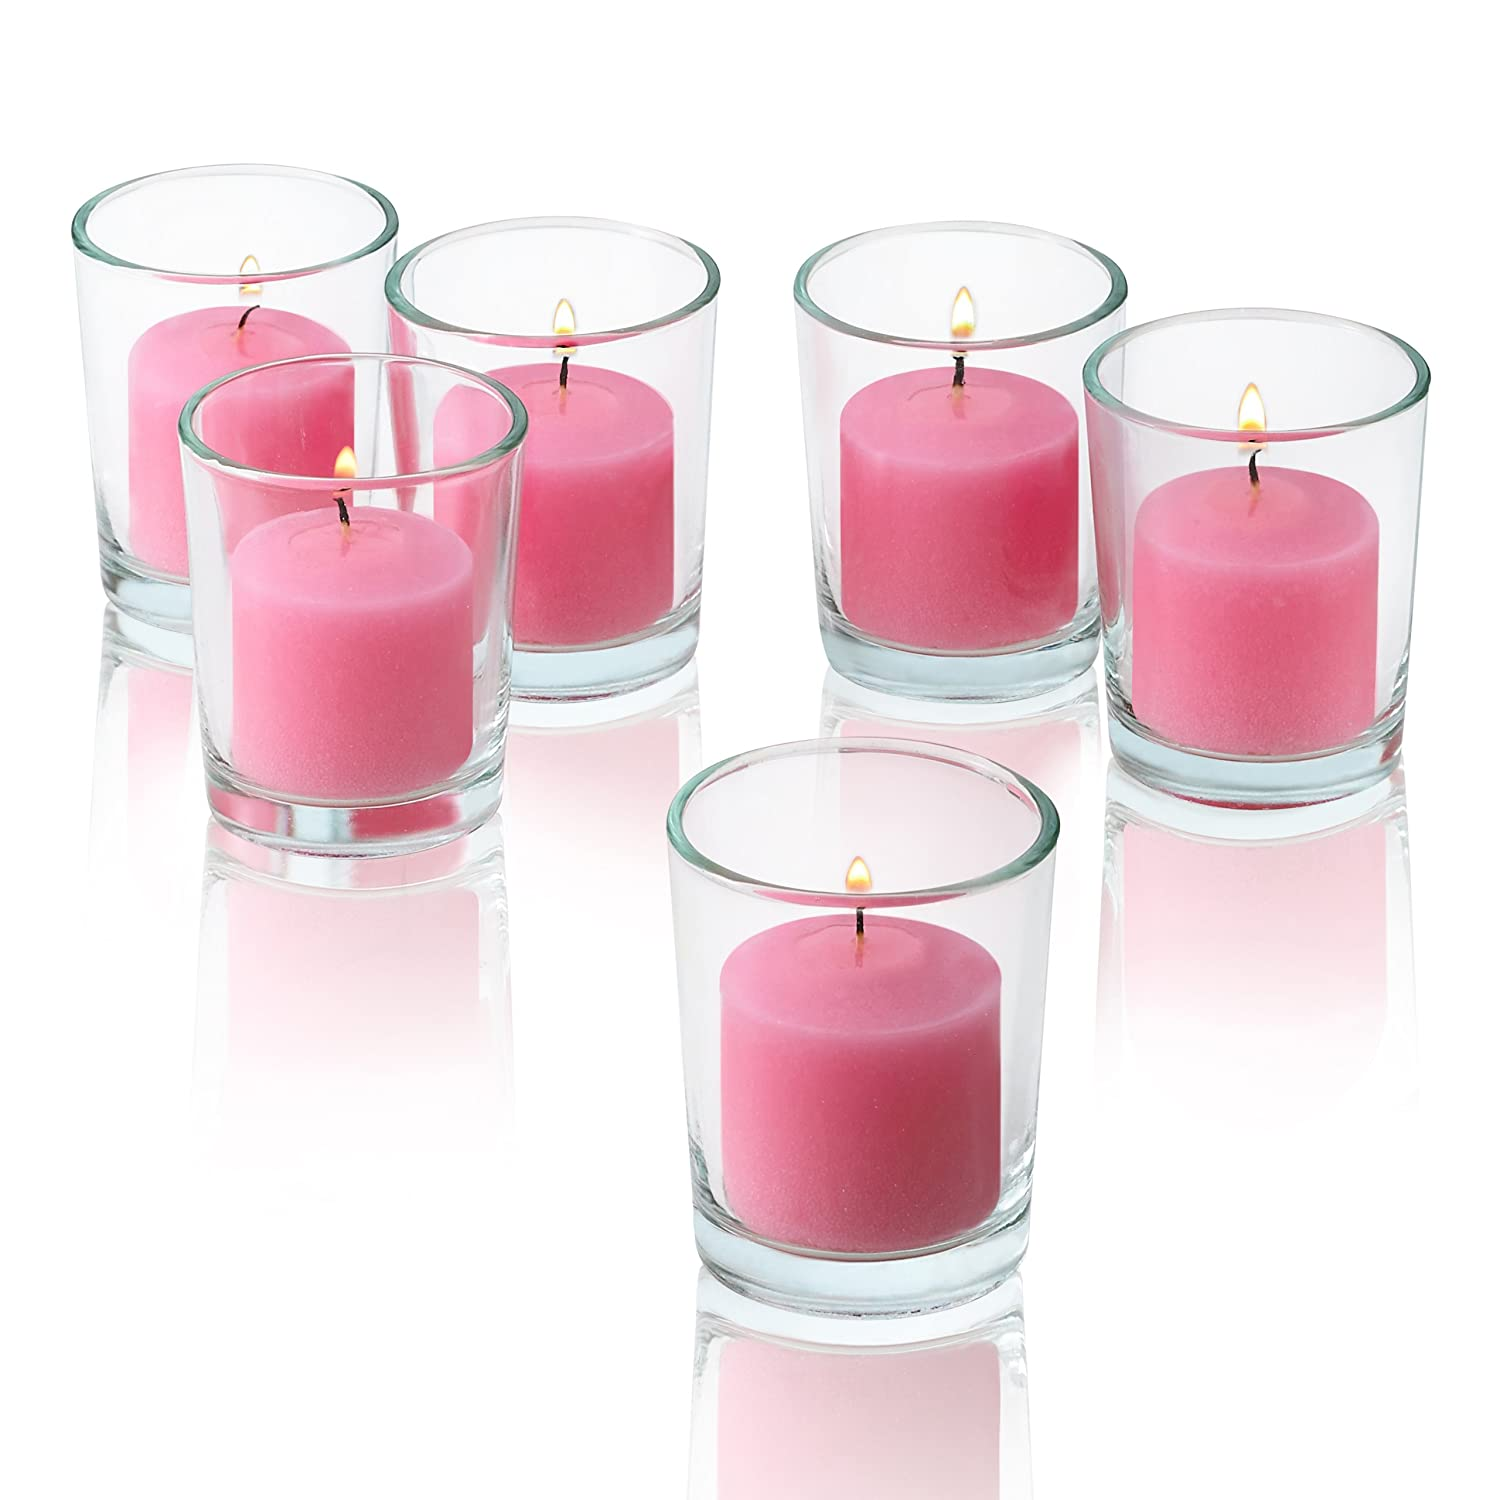 Amazon.com: Pink Rose Garden Scented Candles - Bulk Set of 72 ...